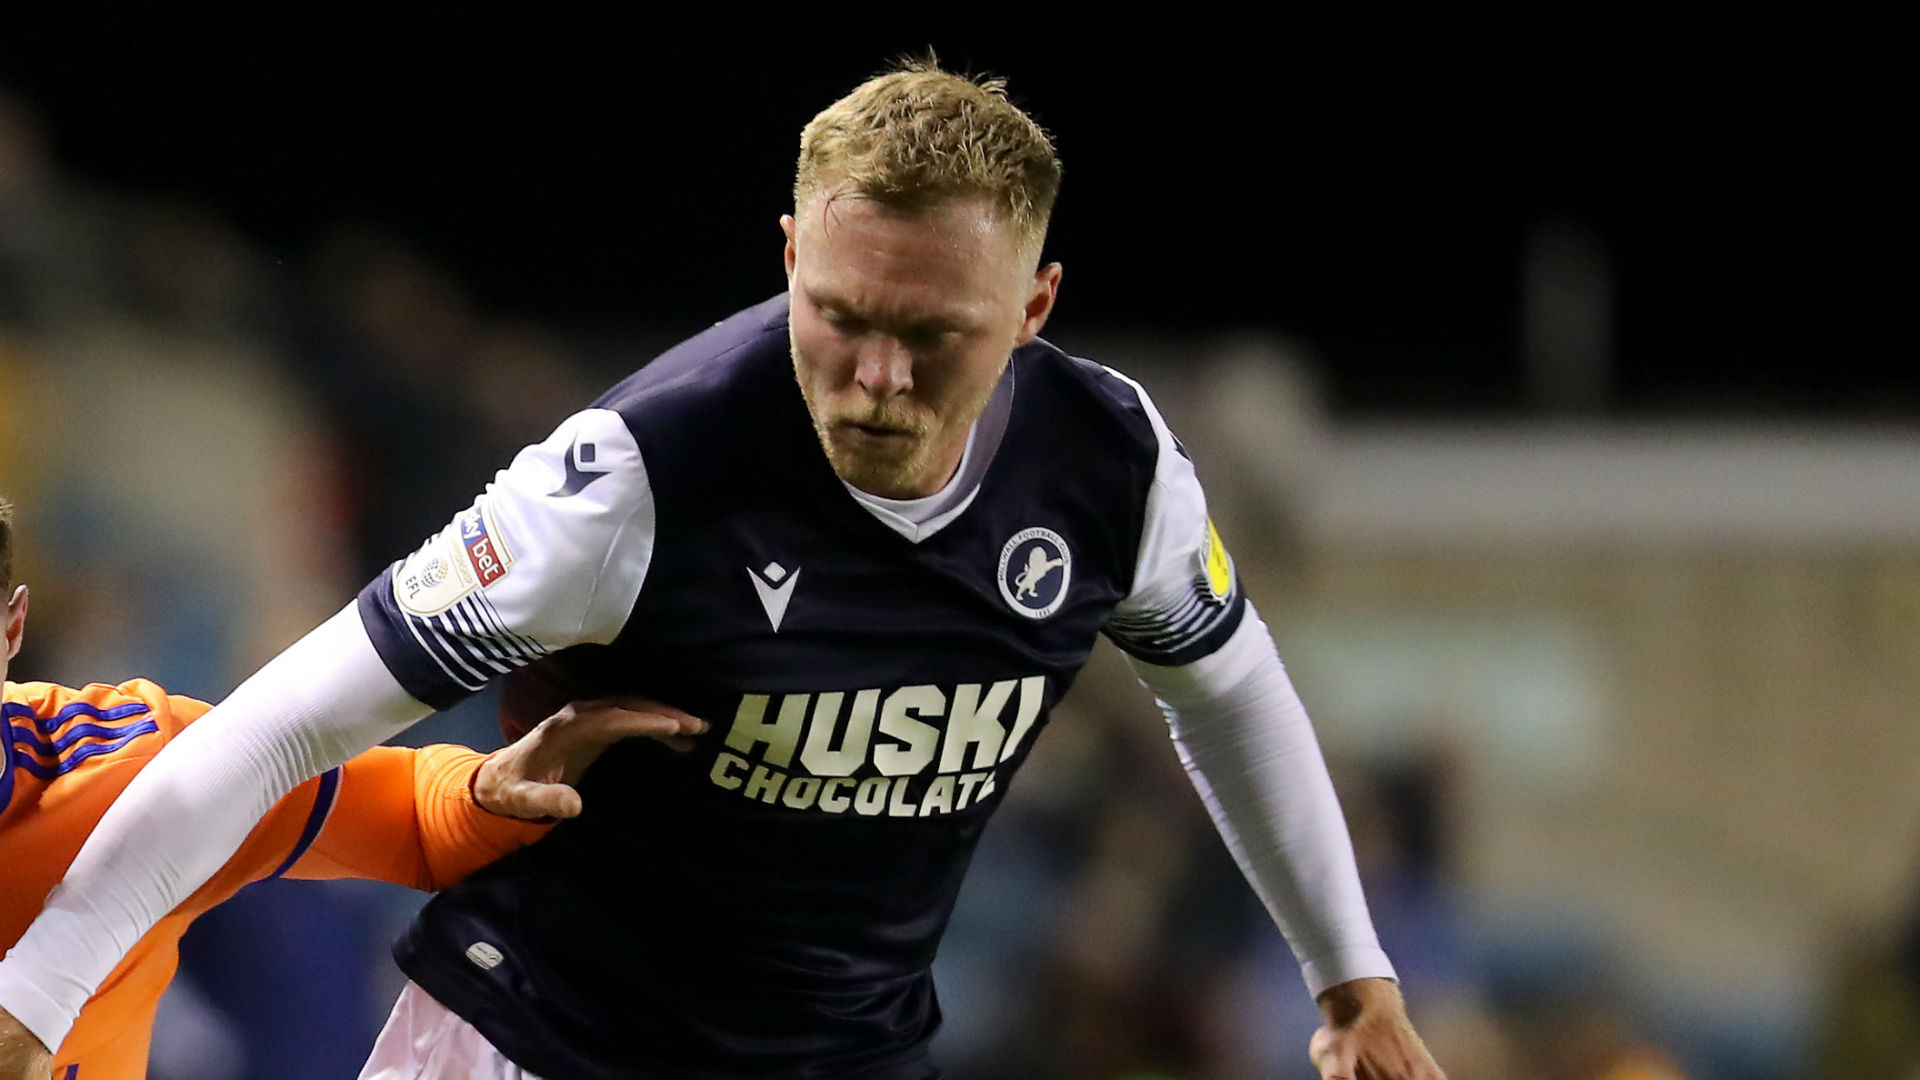 Millwall 2-2 Nottingham Forest: Late drama as late equaliser rescues Lions